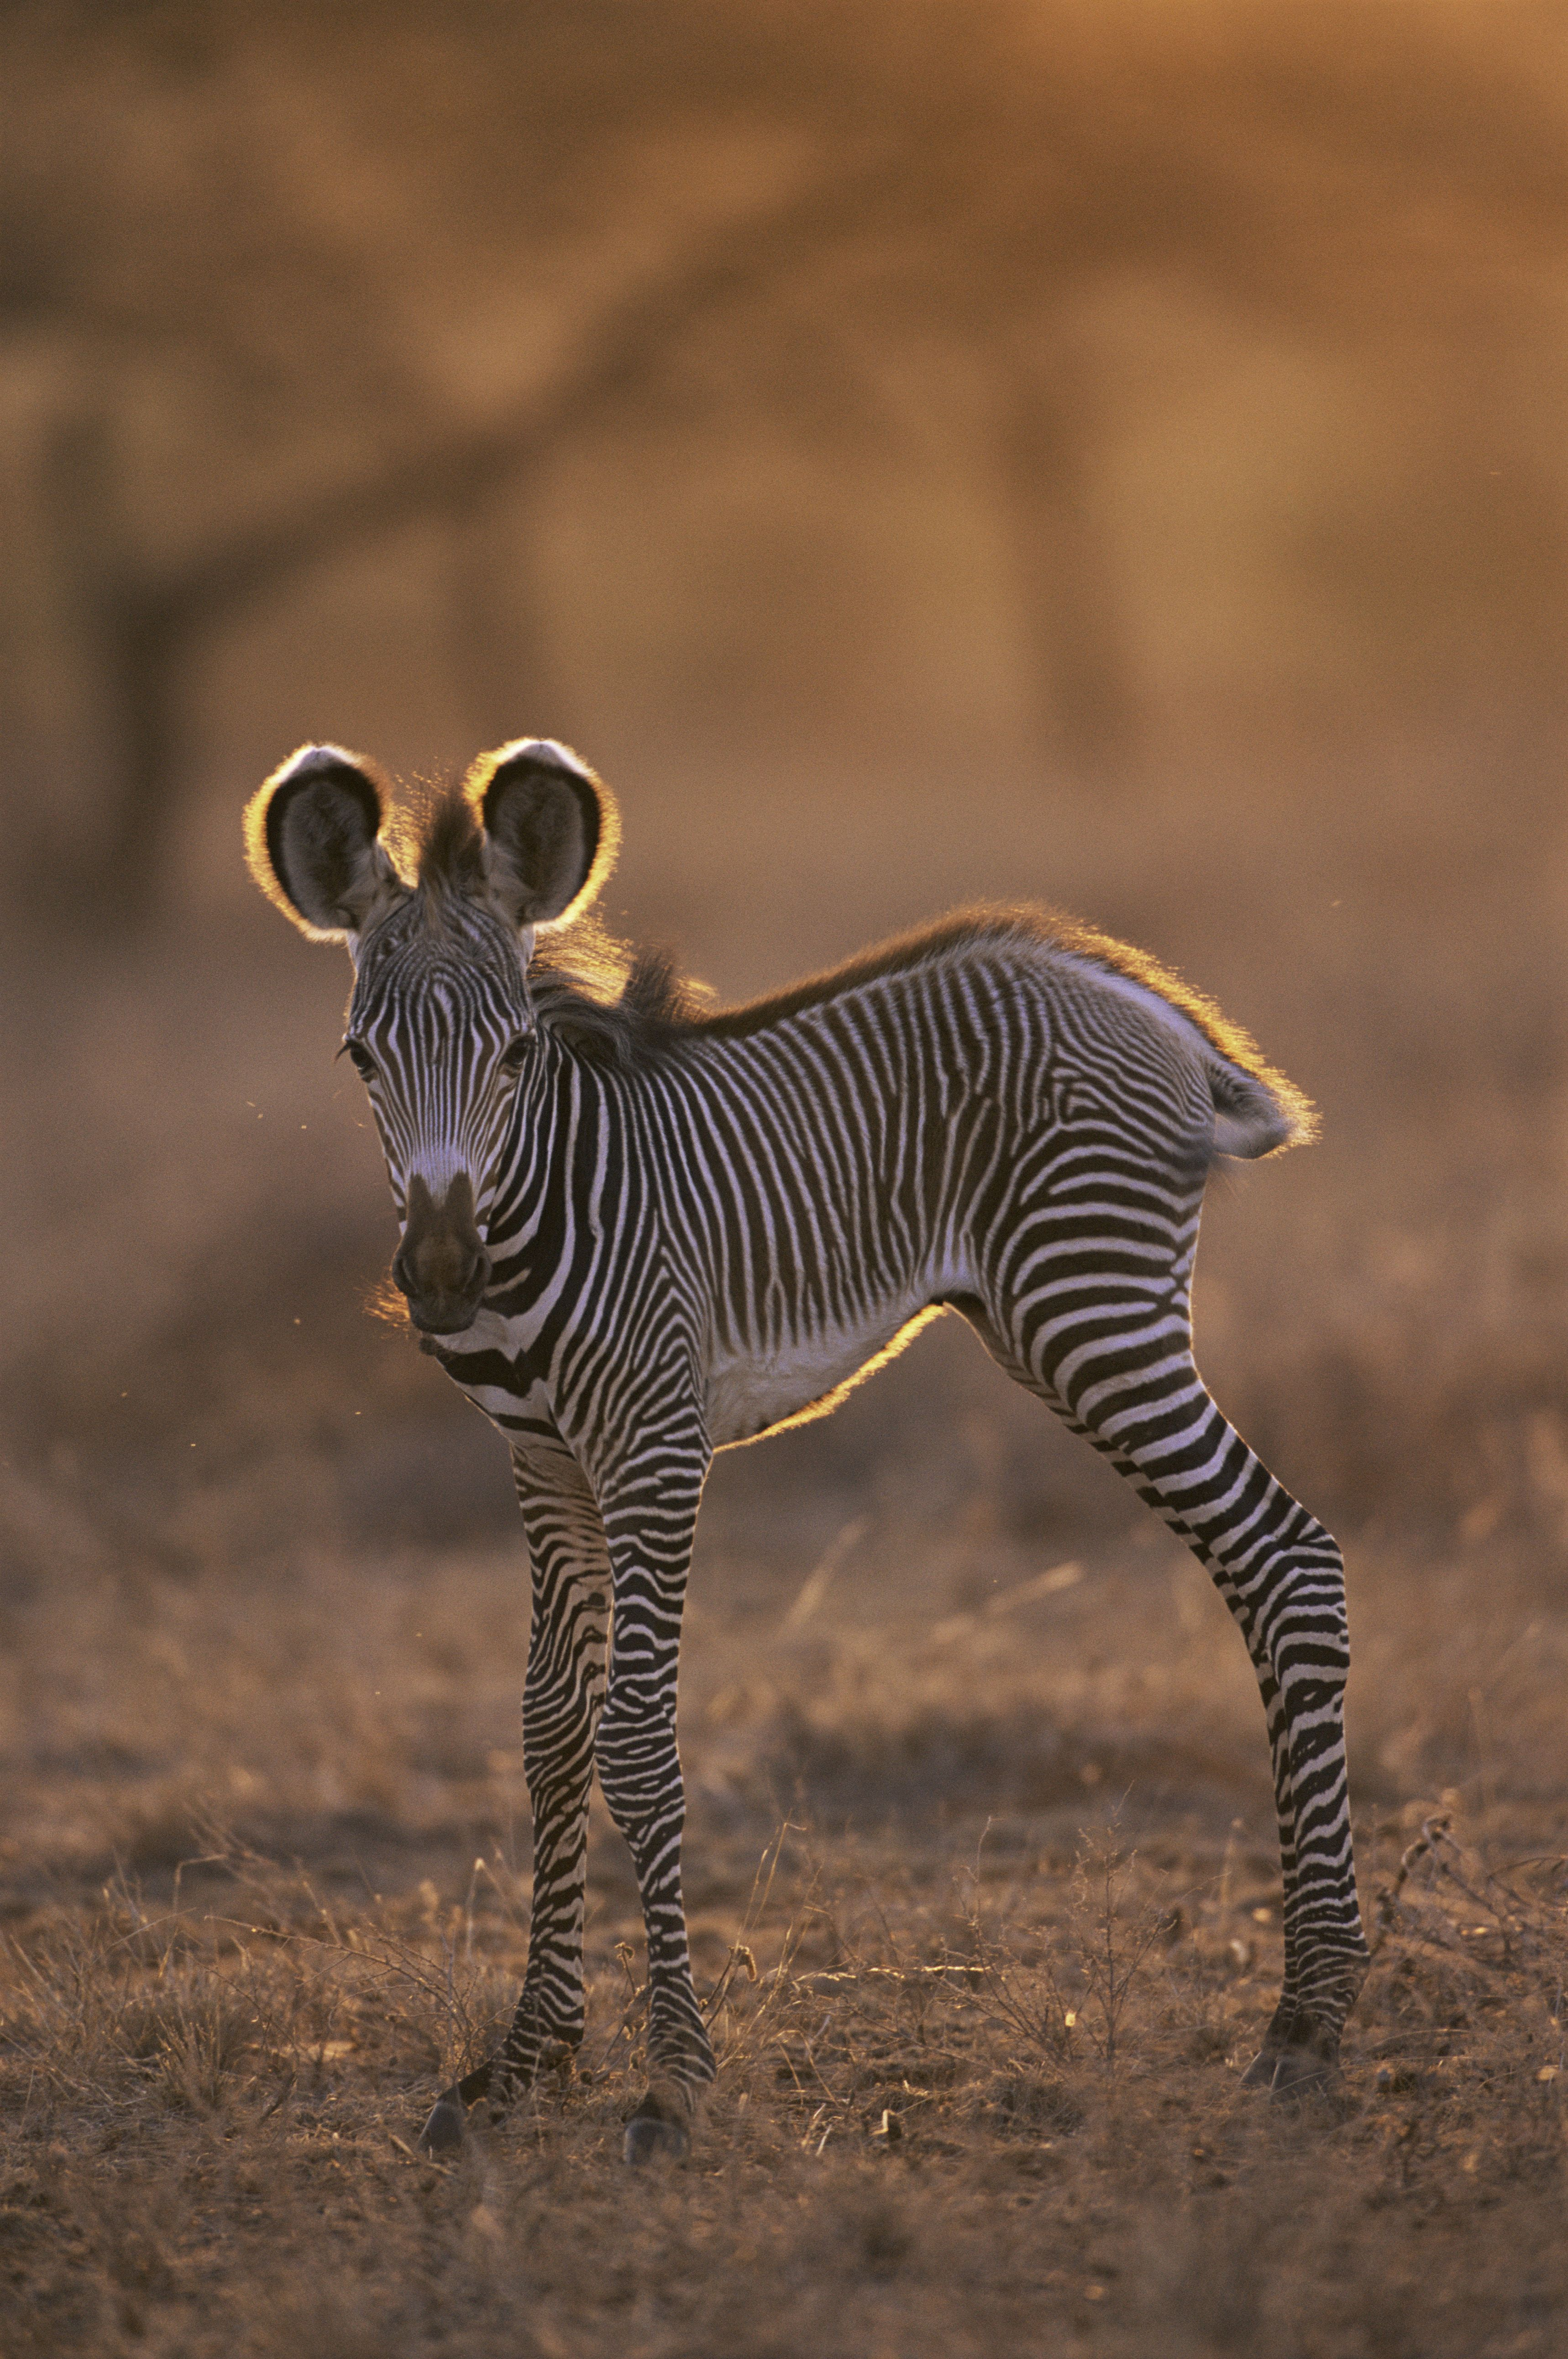 Baby Zebras In Africa Fun Facts About...